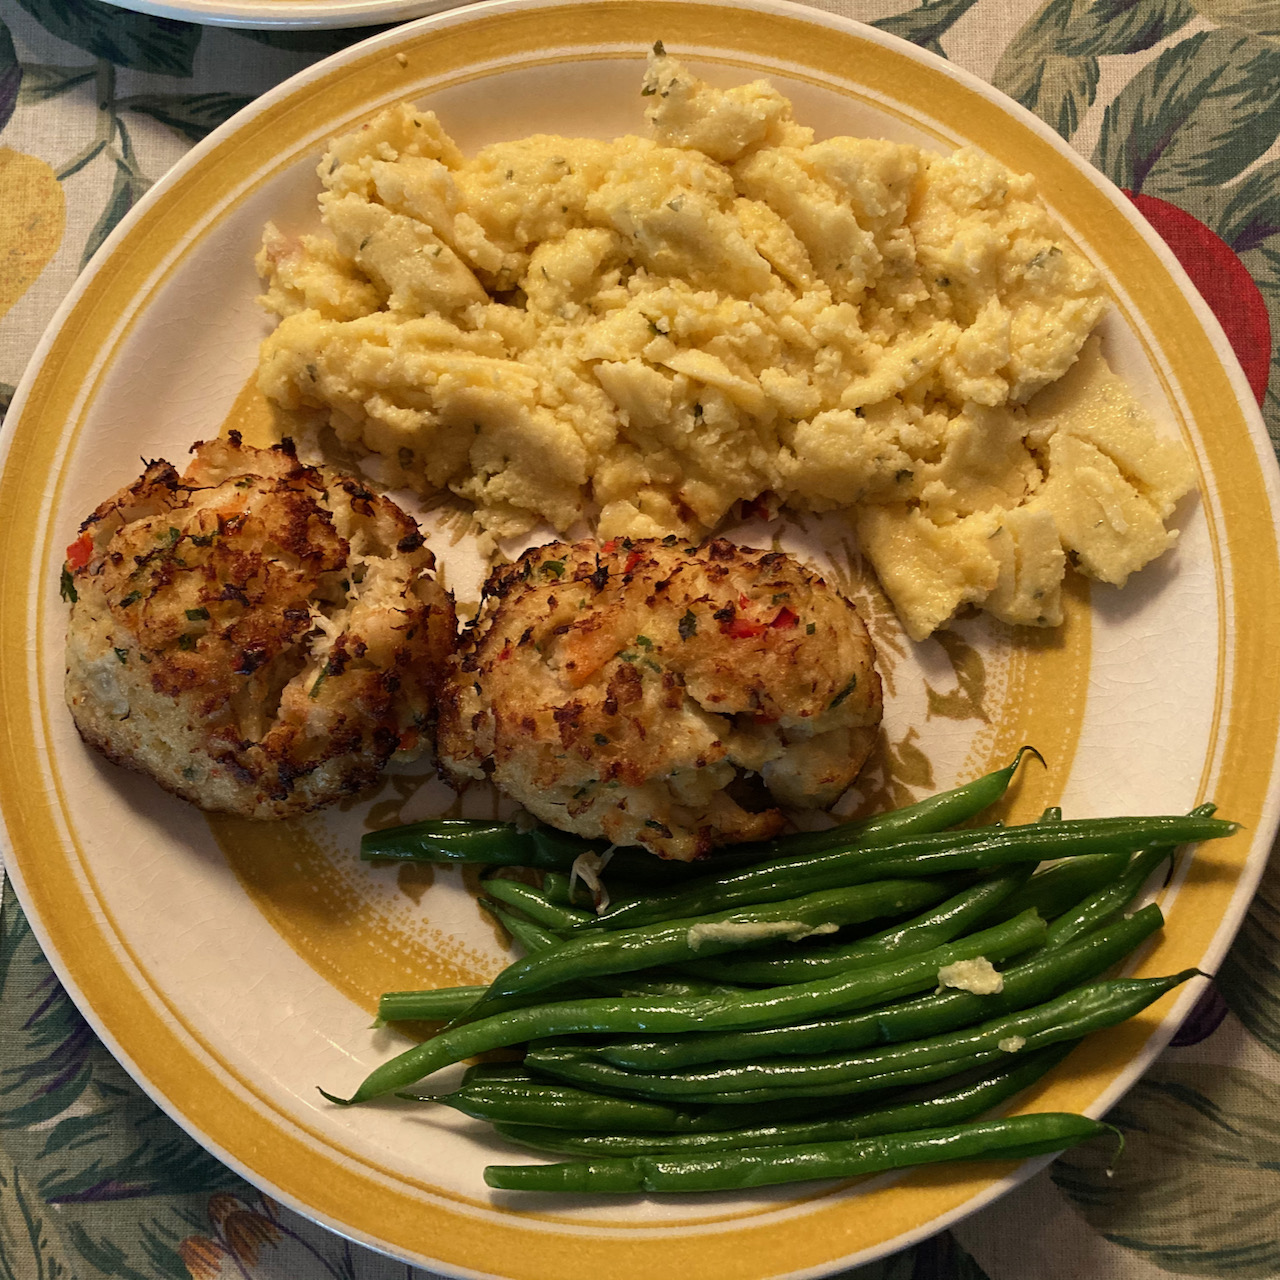 Plate with shrimp and crab cakes, string beans, and polenta.